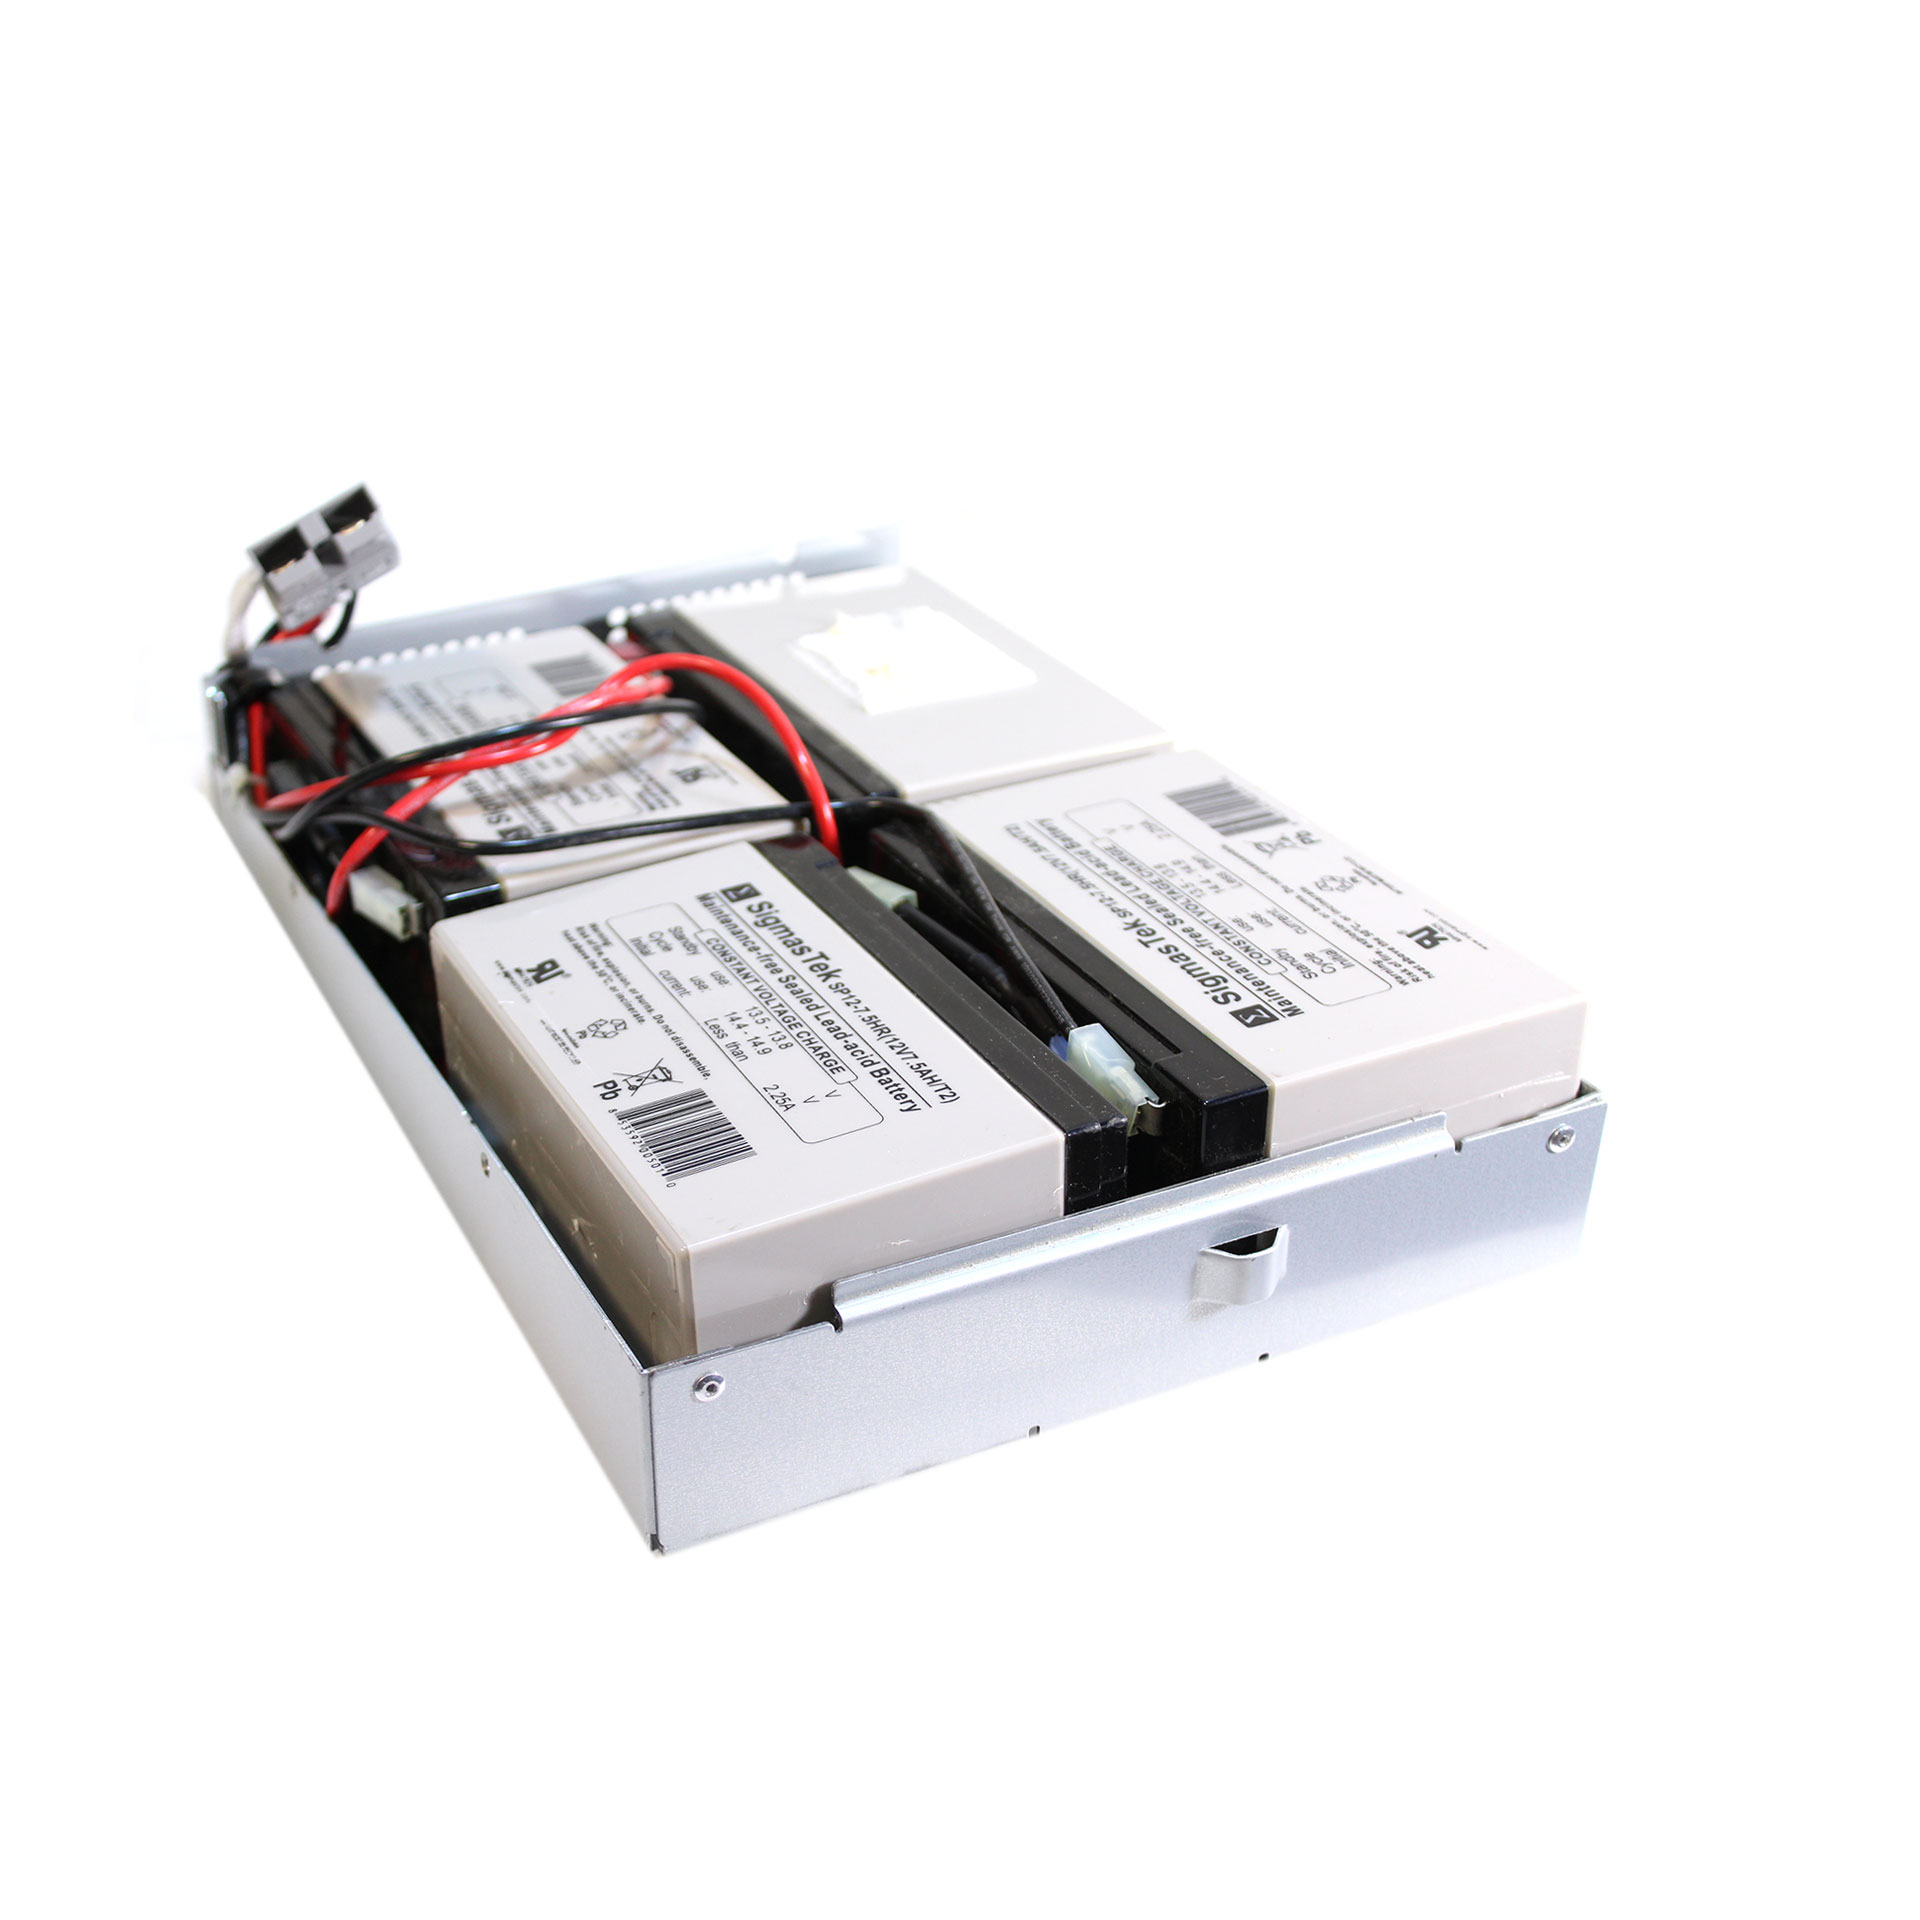 BTI RBC23-SLA23-BTI Replacement Battery for the RBC23 UPS Batter